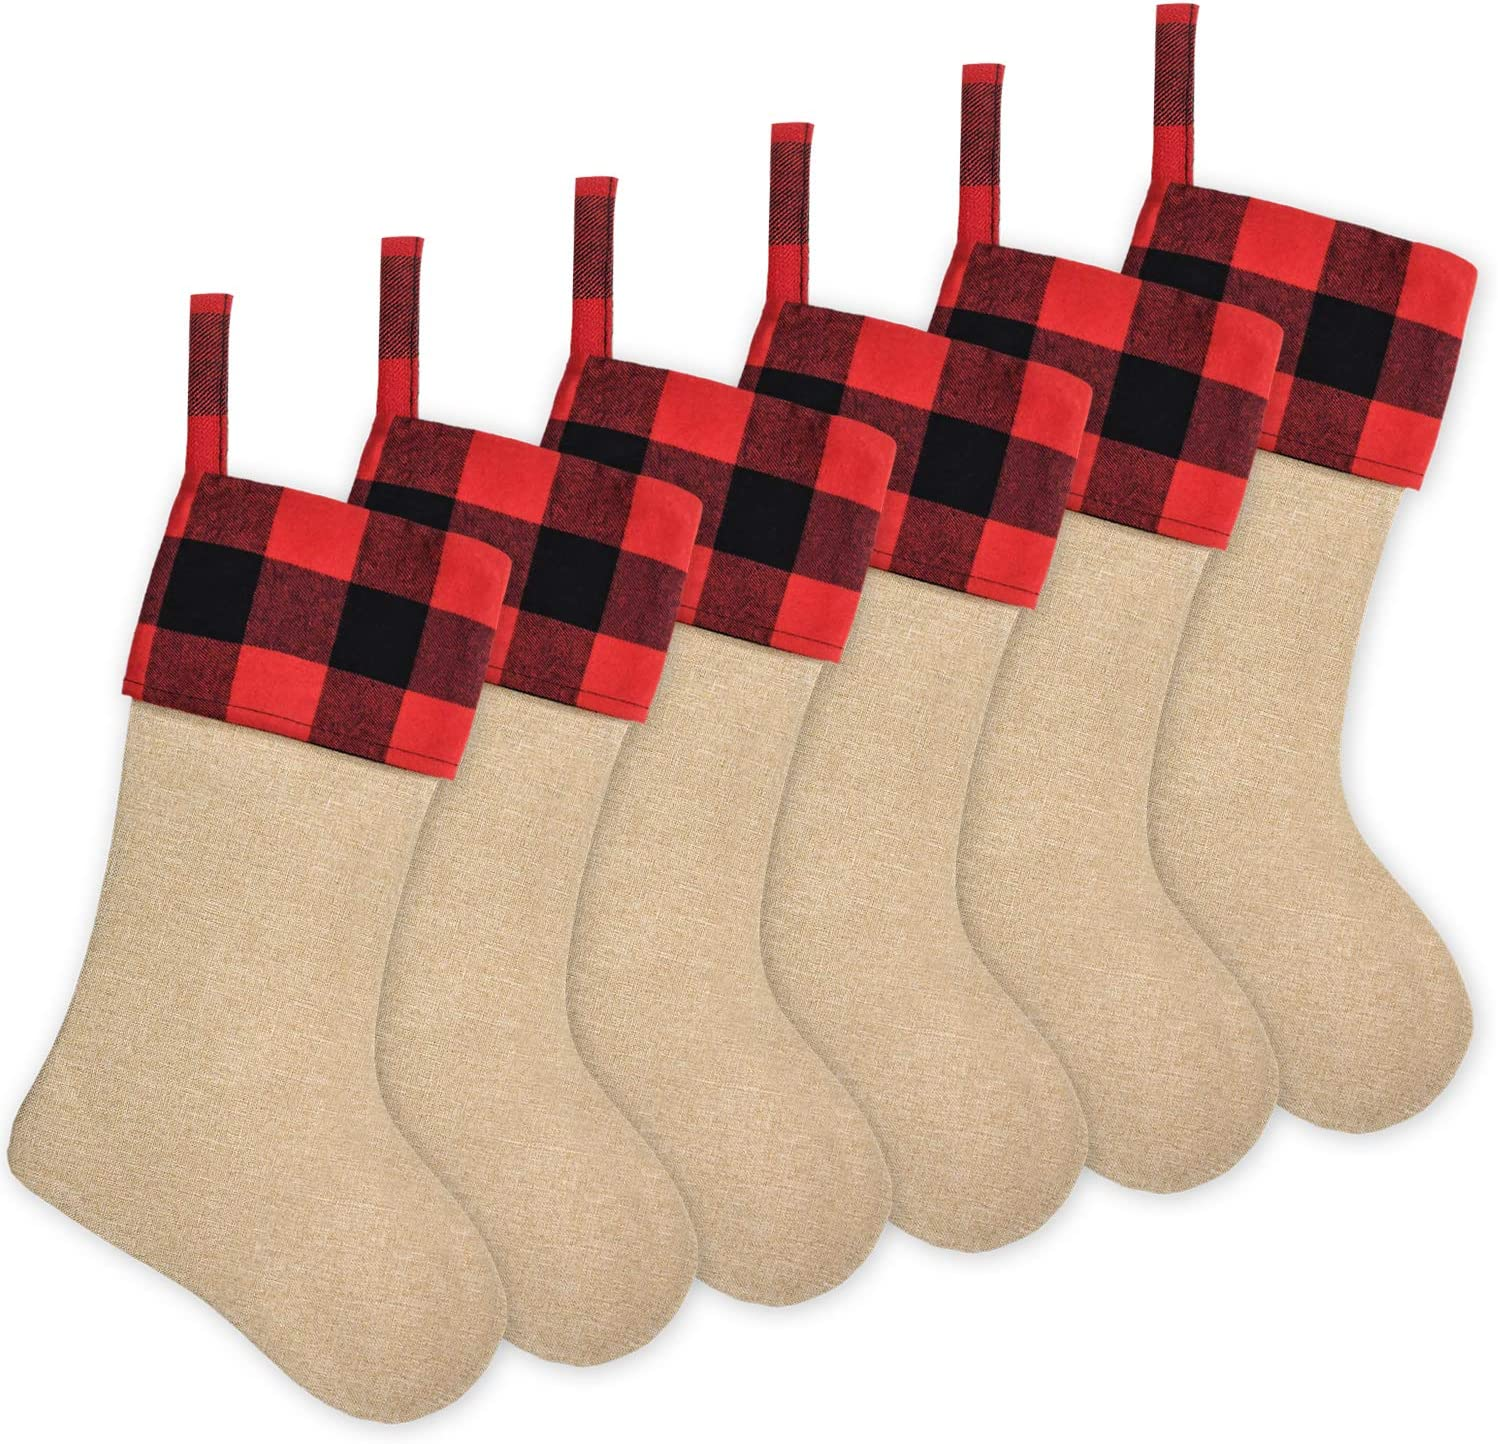 Senneny 6 Pack Burlap Christmas Stockings- 18 Inch Big Christmas Stockings with Buffalo Check Cuff Fireplace Hanging Stockings for Family Christmas Decoration Holiday Season Party Decor